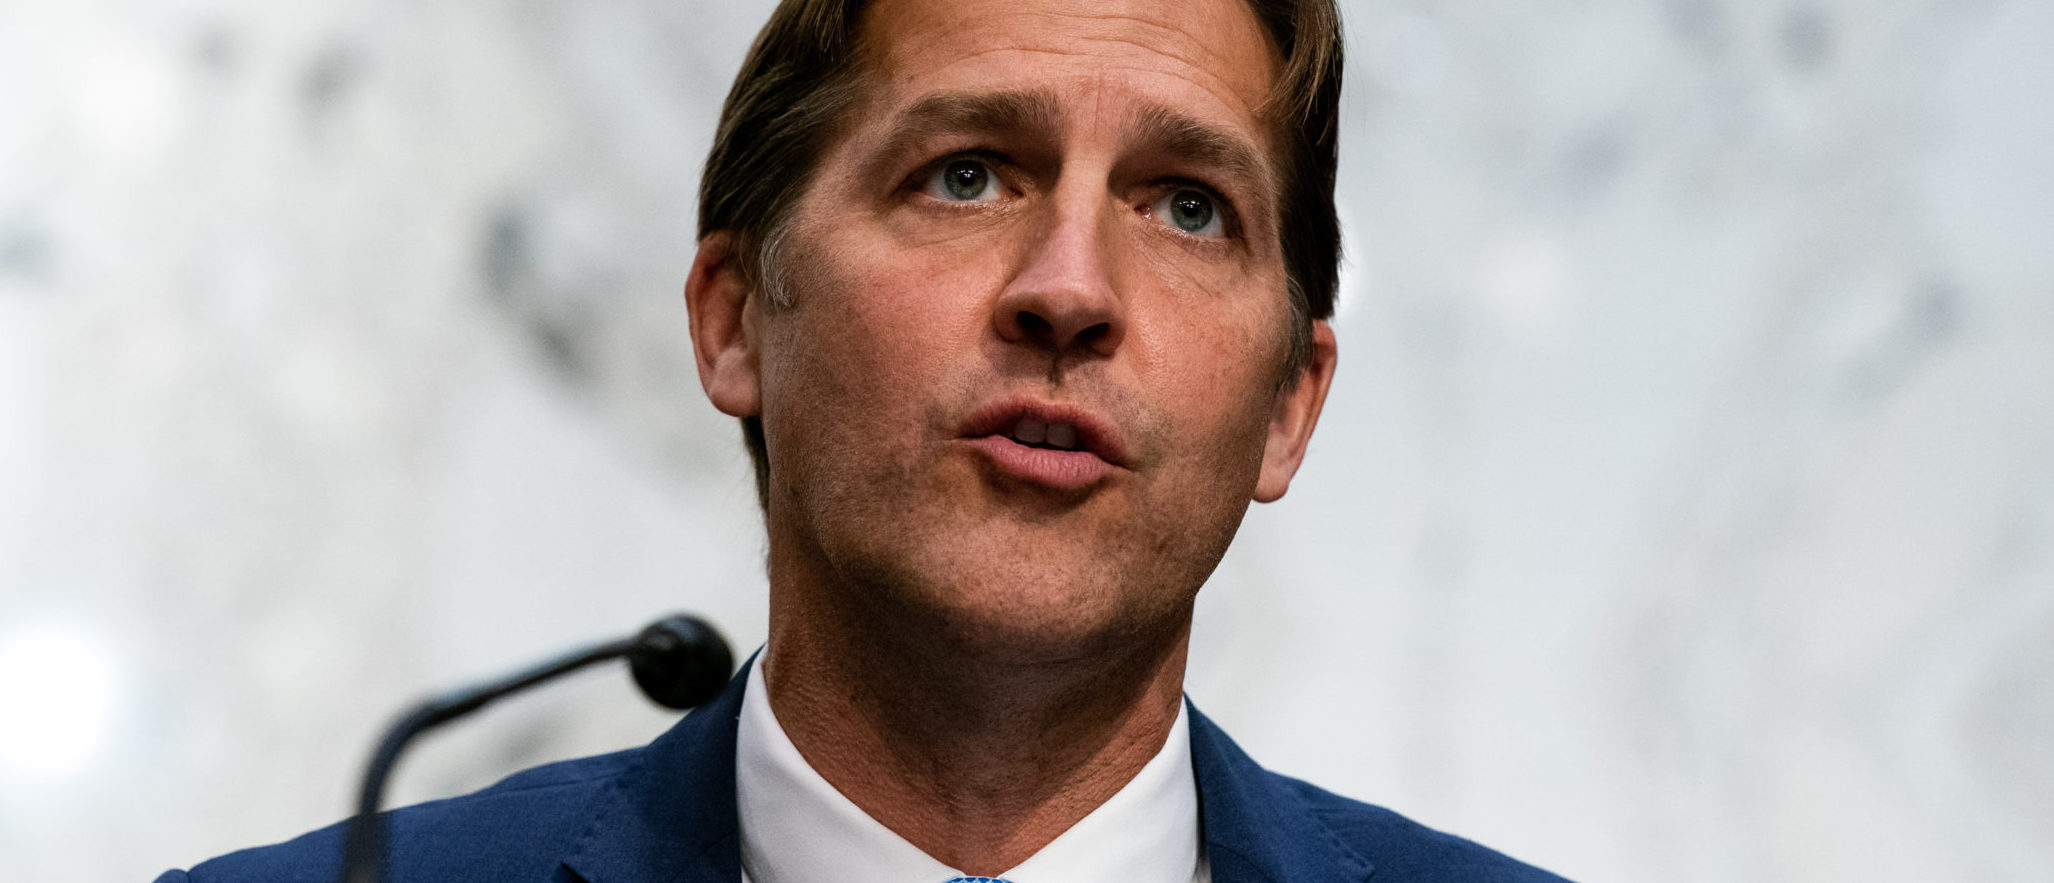 WASHINGTON, DC - OCTOBER 13: U.S. Sen. Ben Sasse (R-NE) speaks while Supreme Court nominee Judge Amy Coney Barrett testifies before the Senate Judiciary Committee on the second day of her Supreme Court confirmation hearing on Capitol Hill on October 13, 2020 in Washington, DC. Barrett was nominated by President Donald Trump to fill the vacancy left by Justice Ruth Bader Ginsburg who passed away in September. (Anna Moneymaker-Pool/Getty Images)